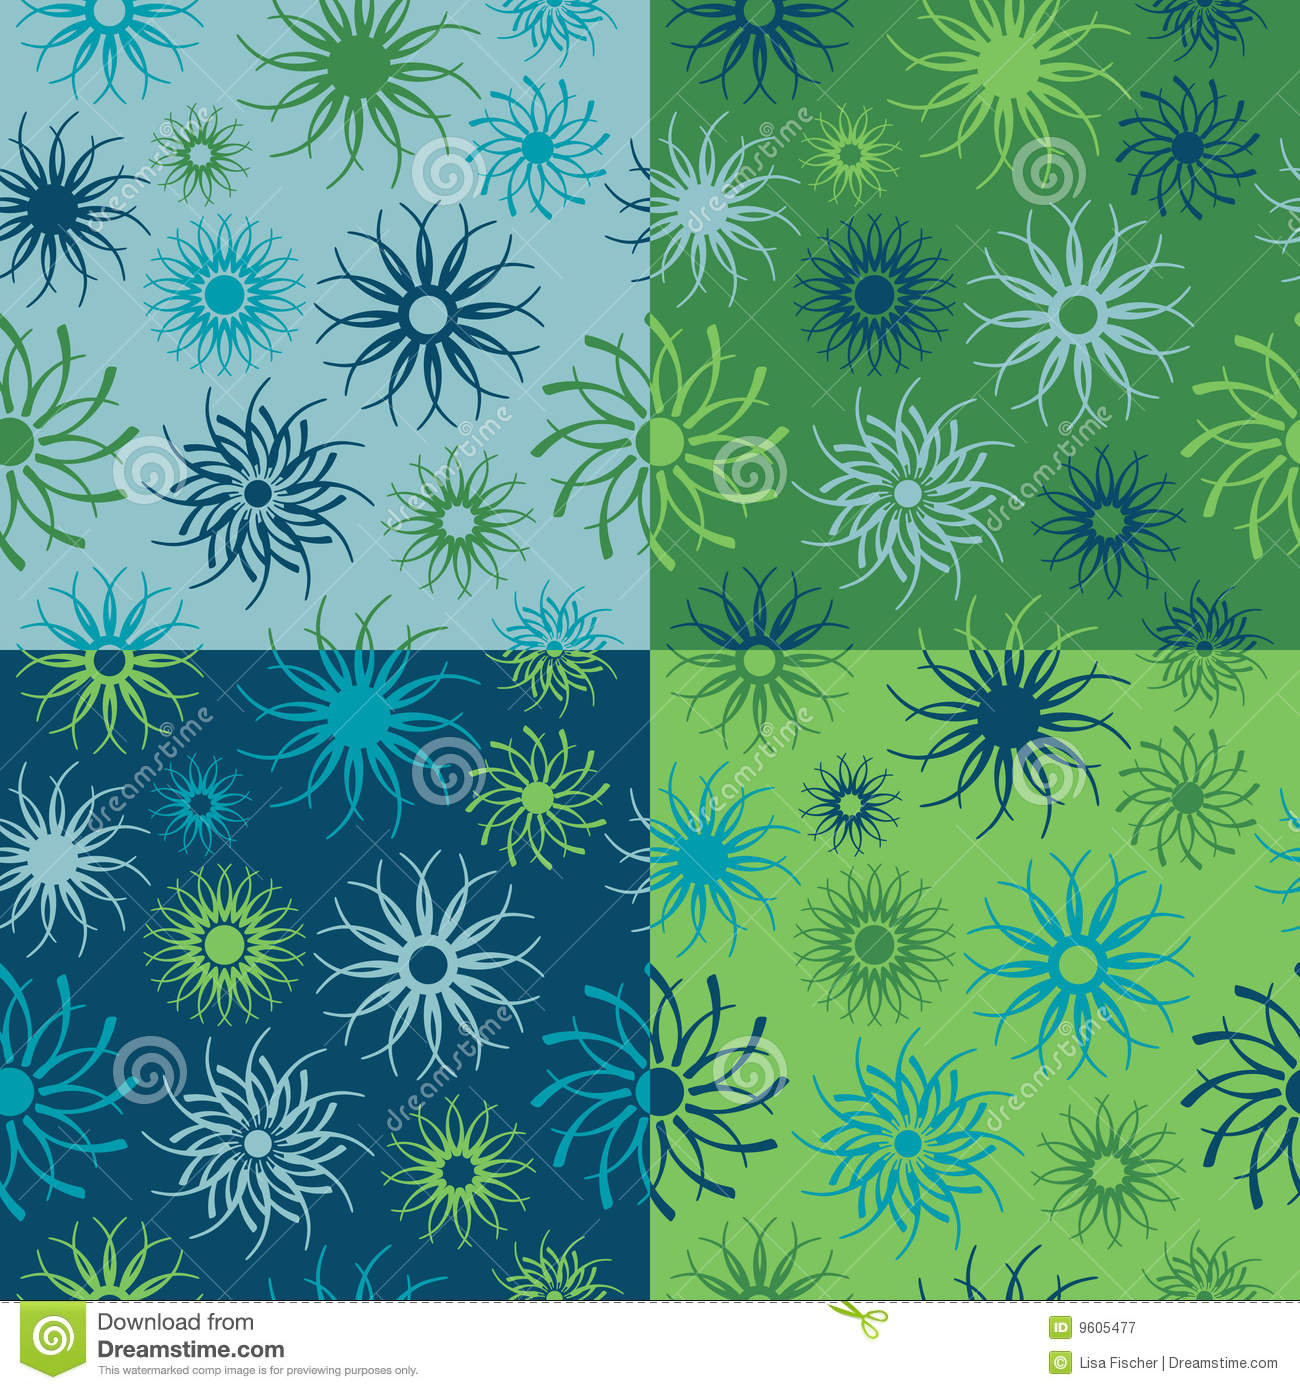 Sparkle Flower Pattern in Blues and Greens